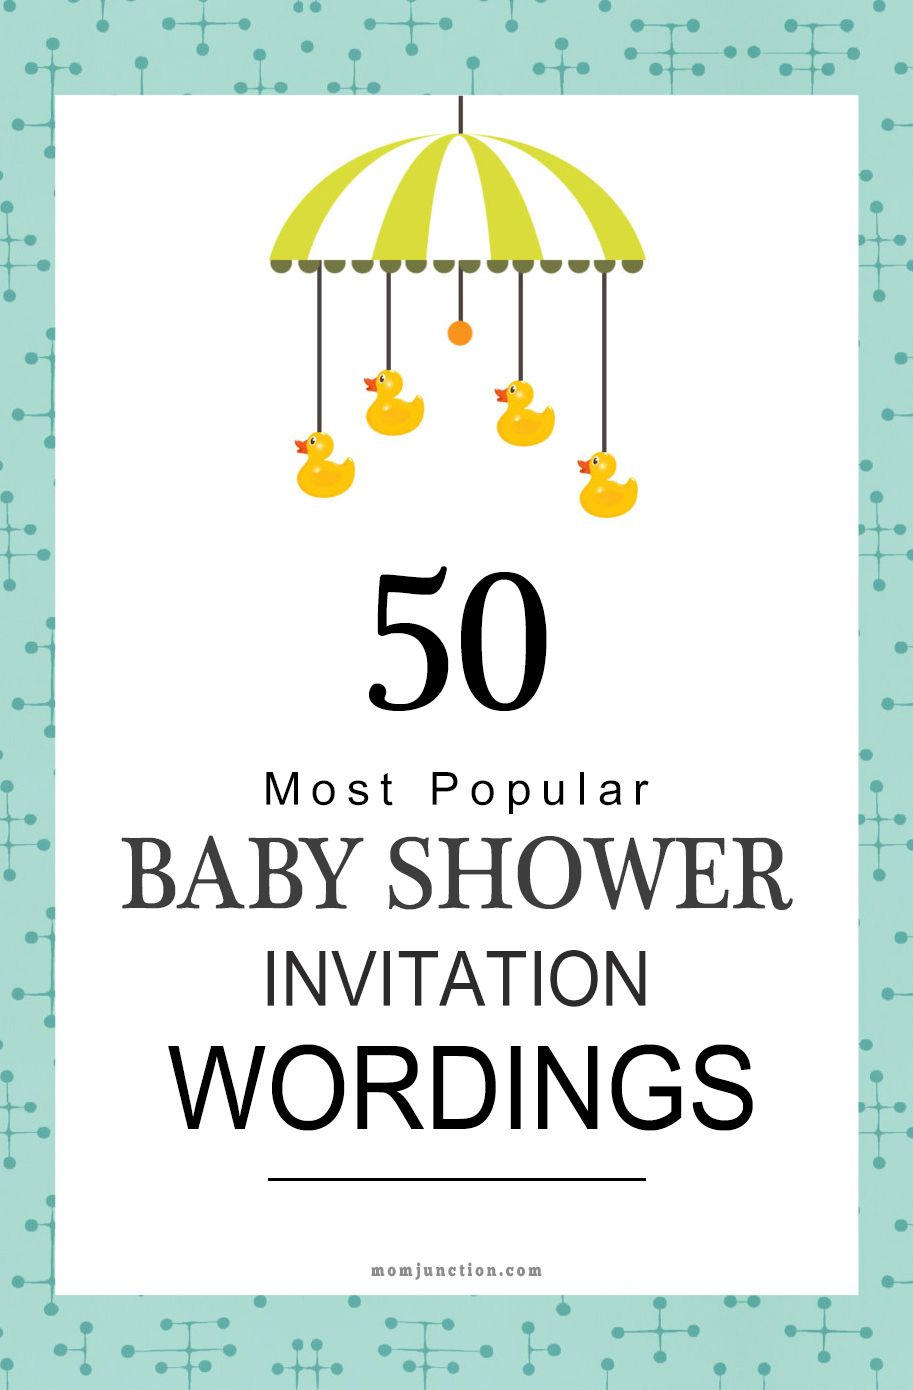 75 Most Popular Baby Shower Invitation Wordings | Babyshower, Shower invitations and 50th